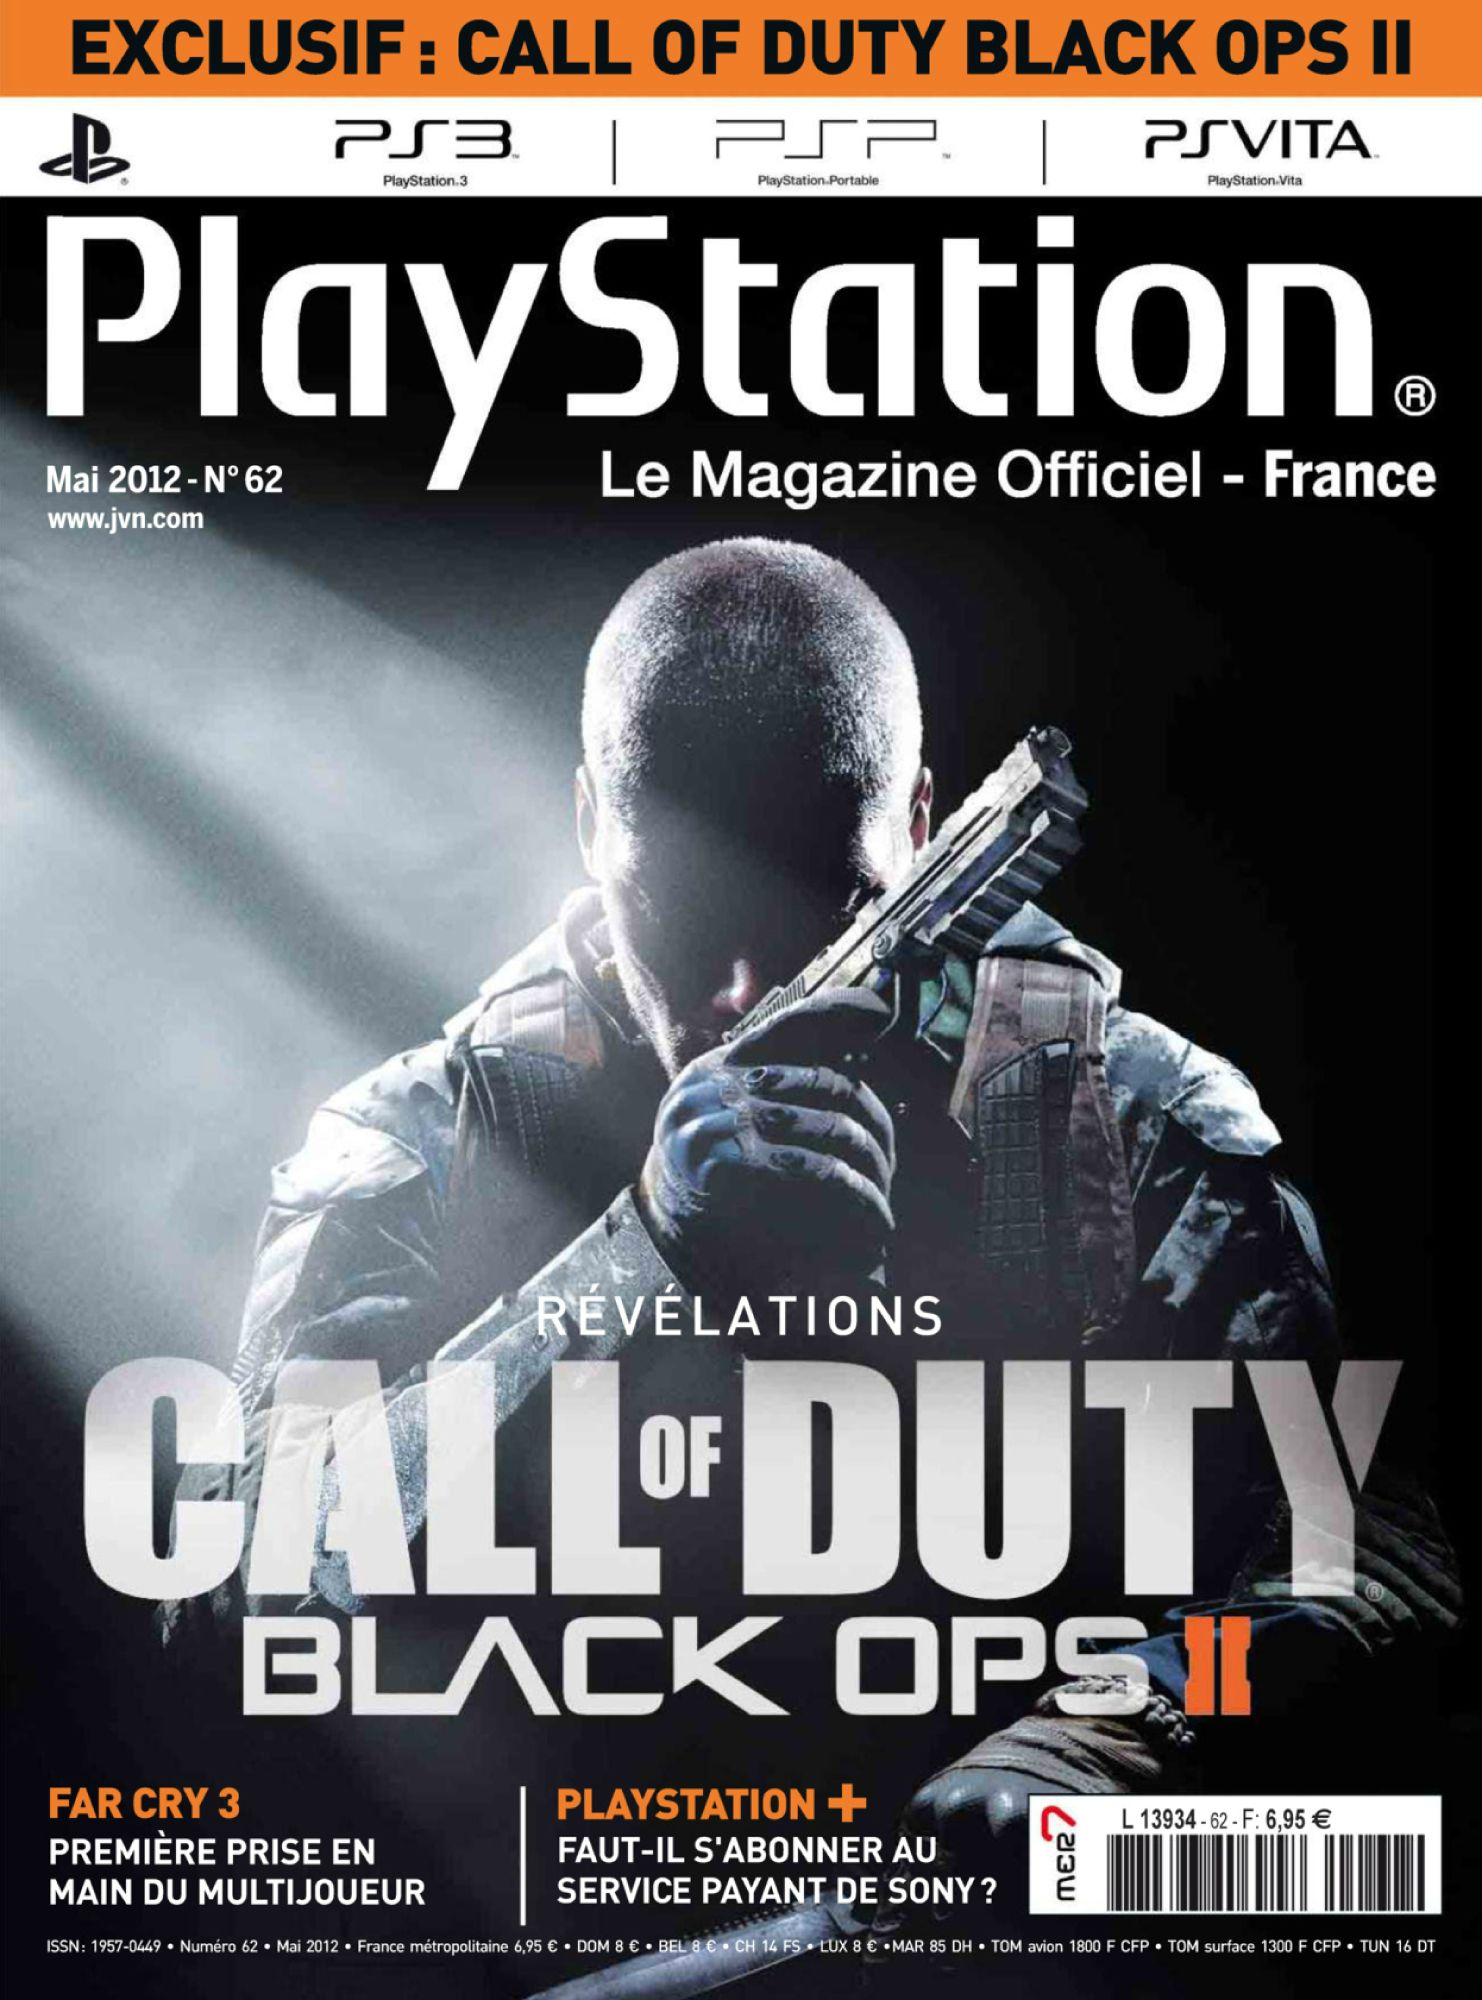 Official Call of Duty Black Ops II Scans detailed by PlayStation Magazine France